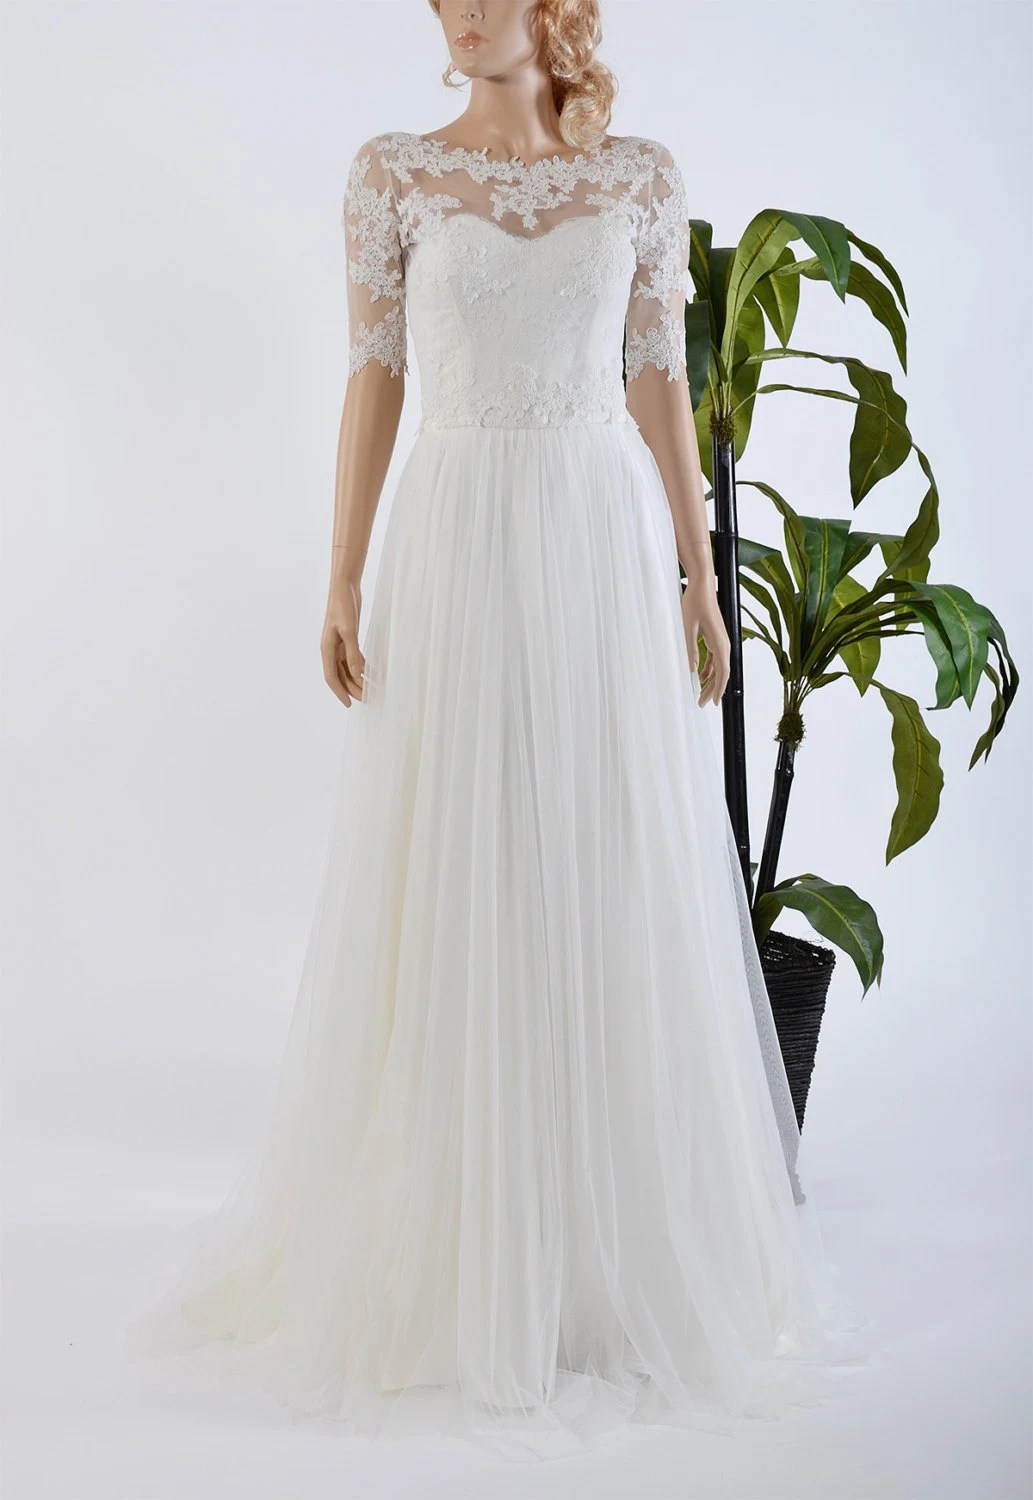 Strapless lace wedding dress with boat neck elbow sleeve lace